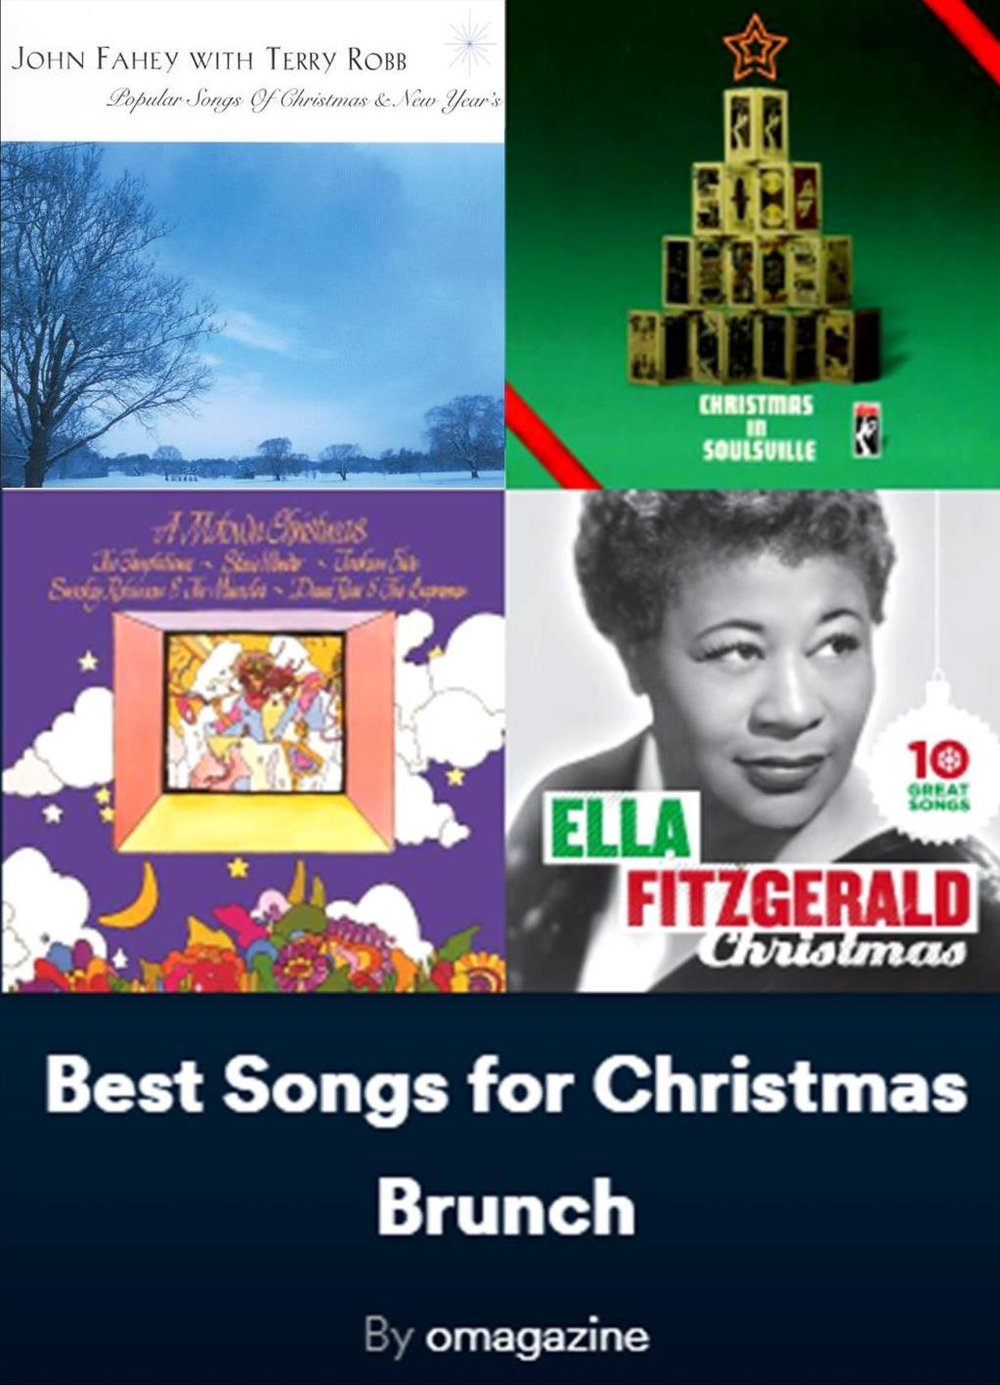 oprah play listjpg - Blues Christmas Songs